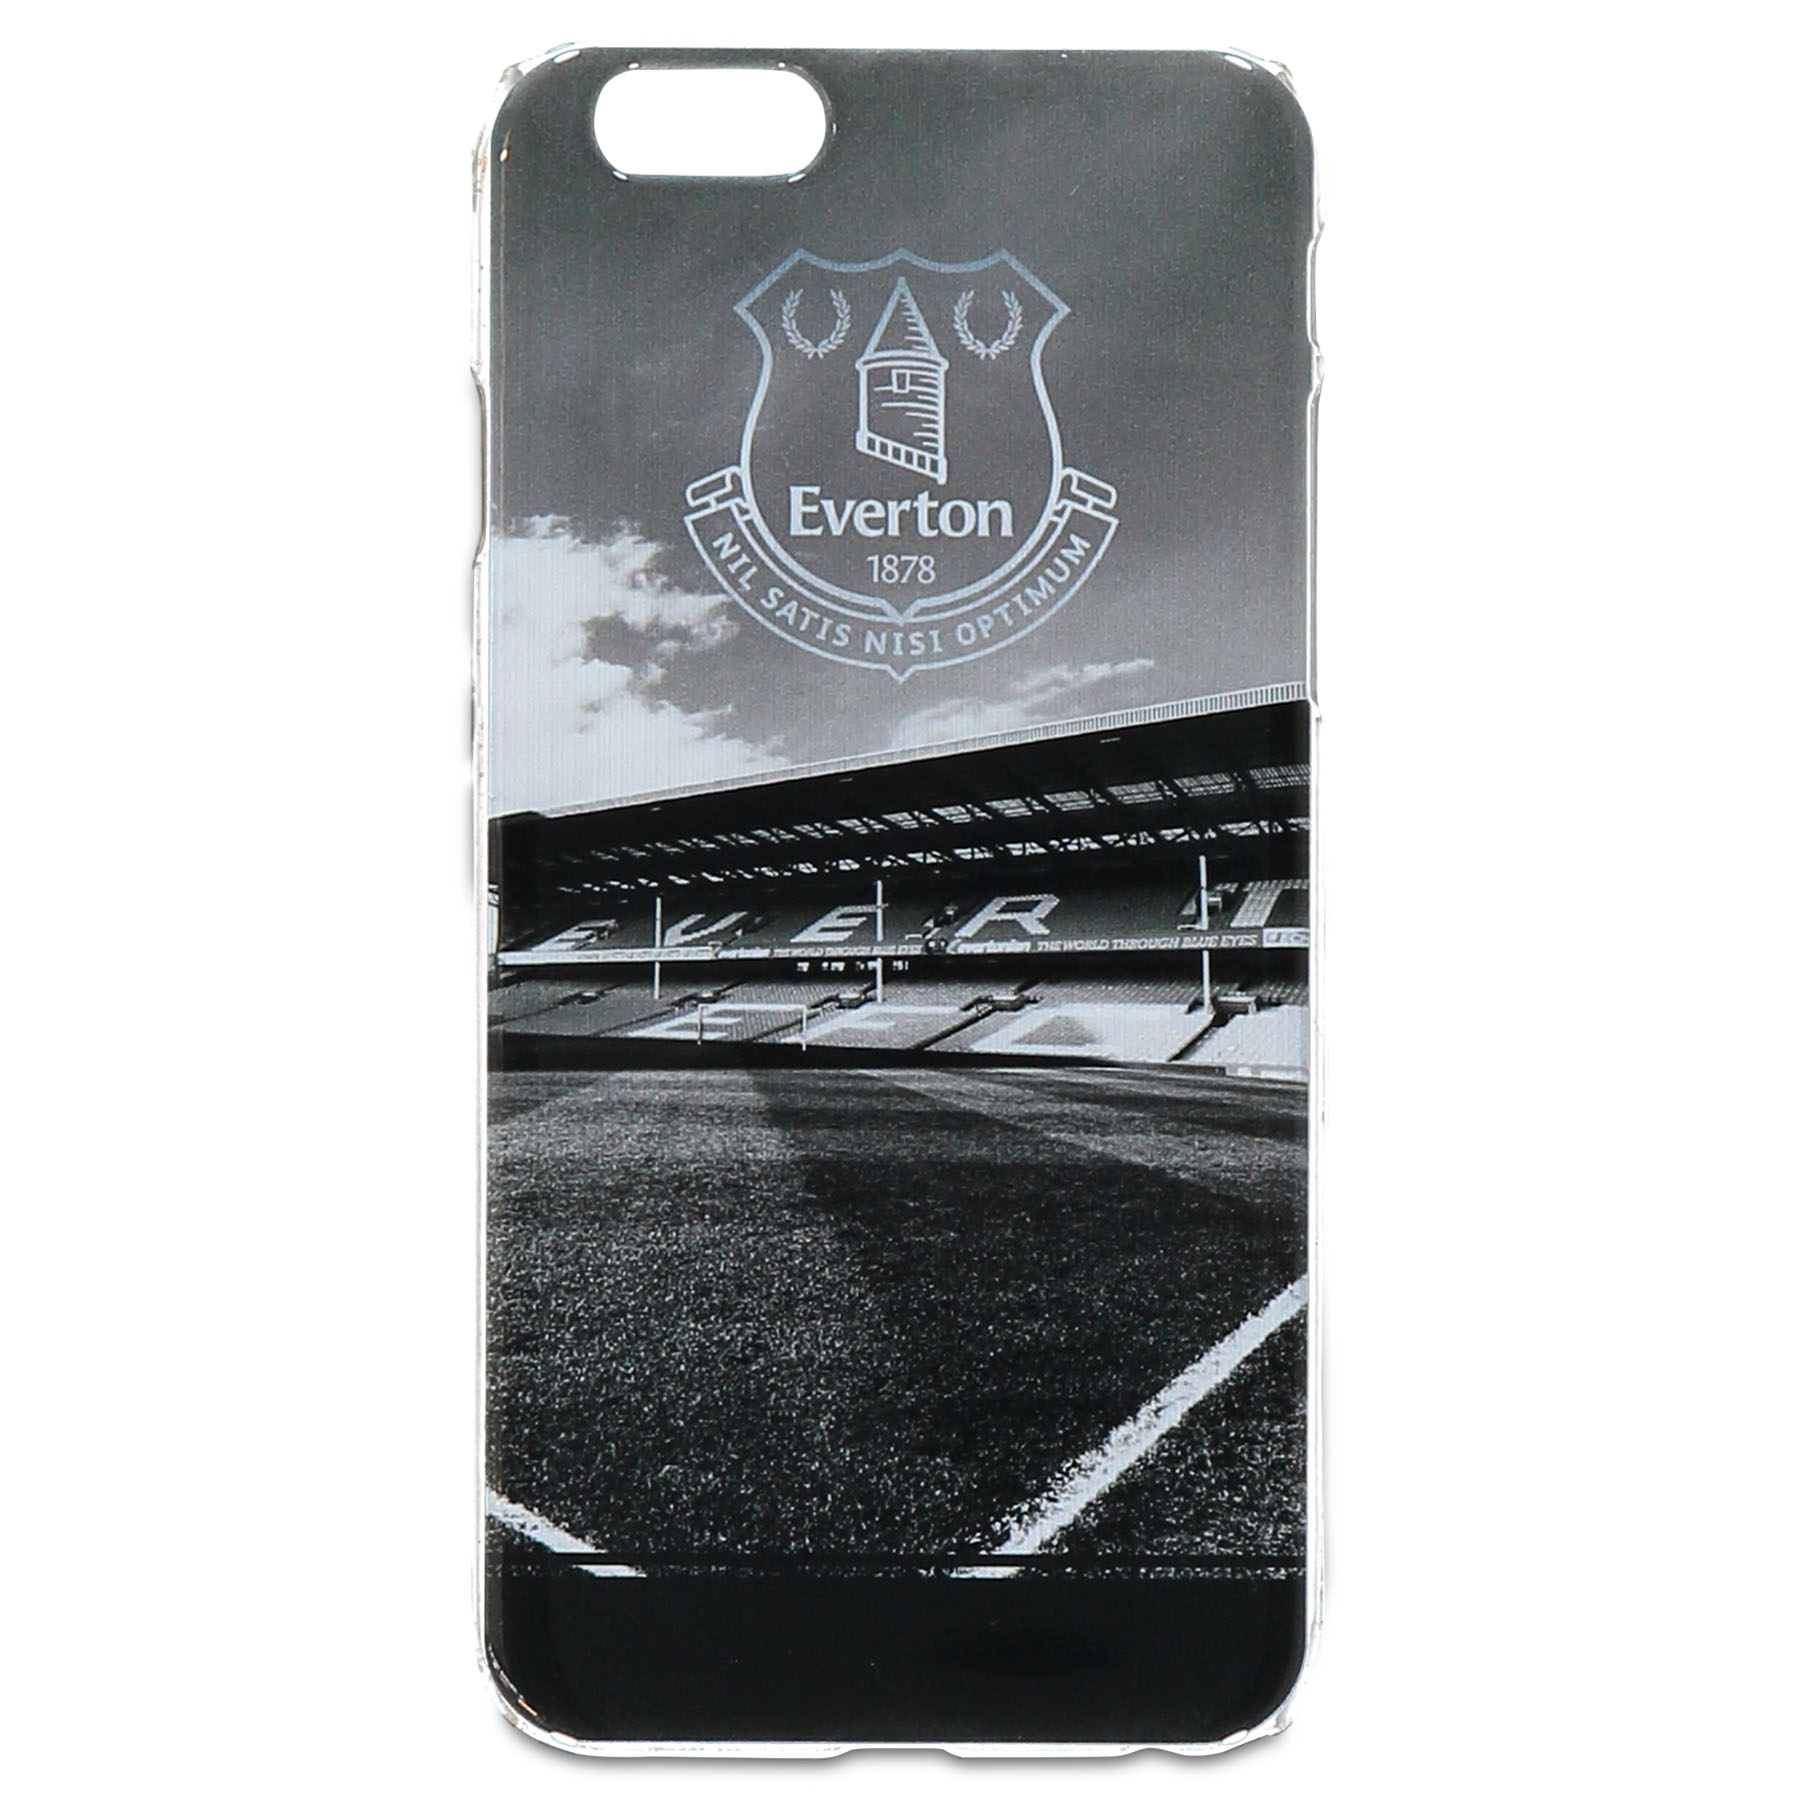 Everton iPhone 6 Hard Case Cover